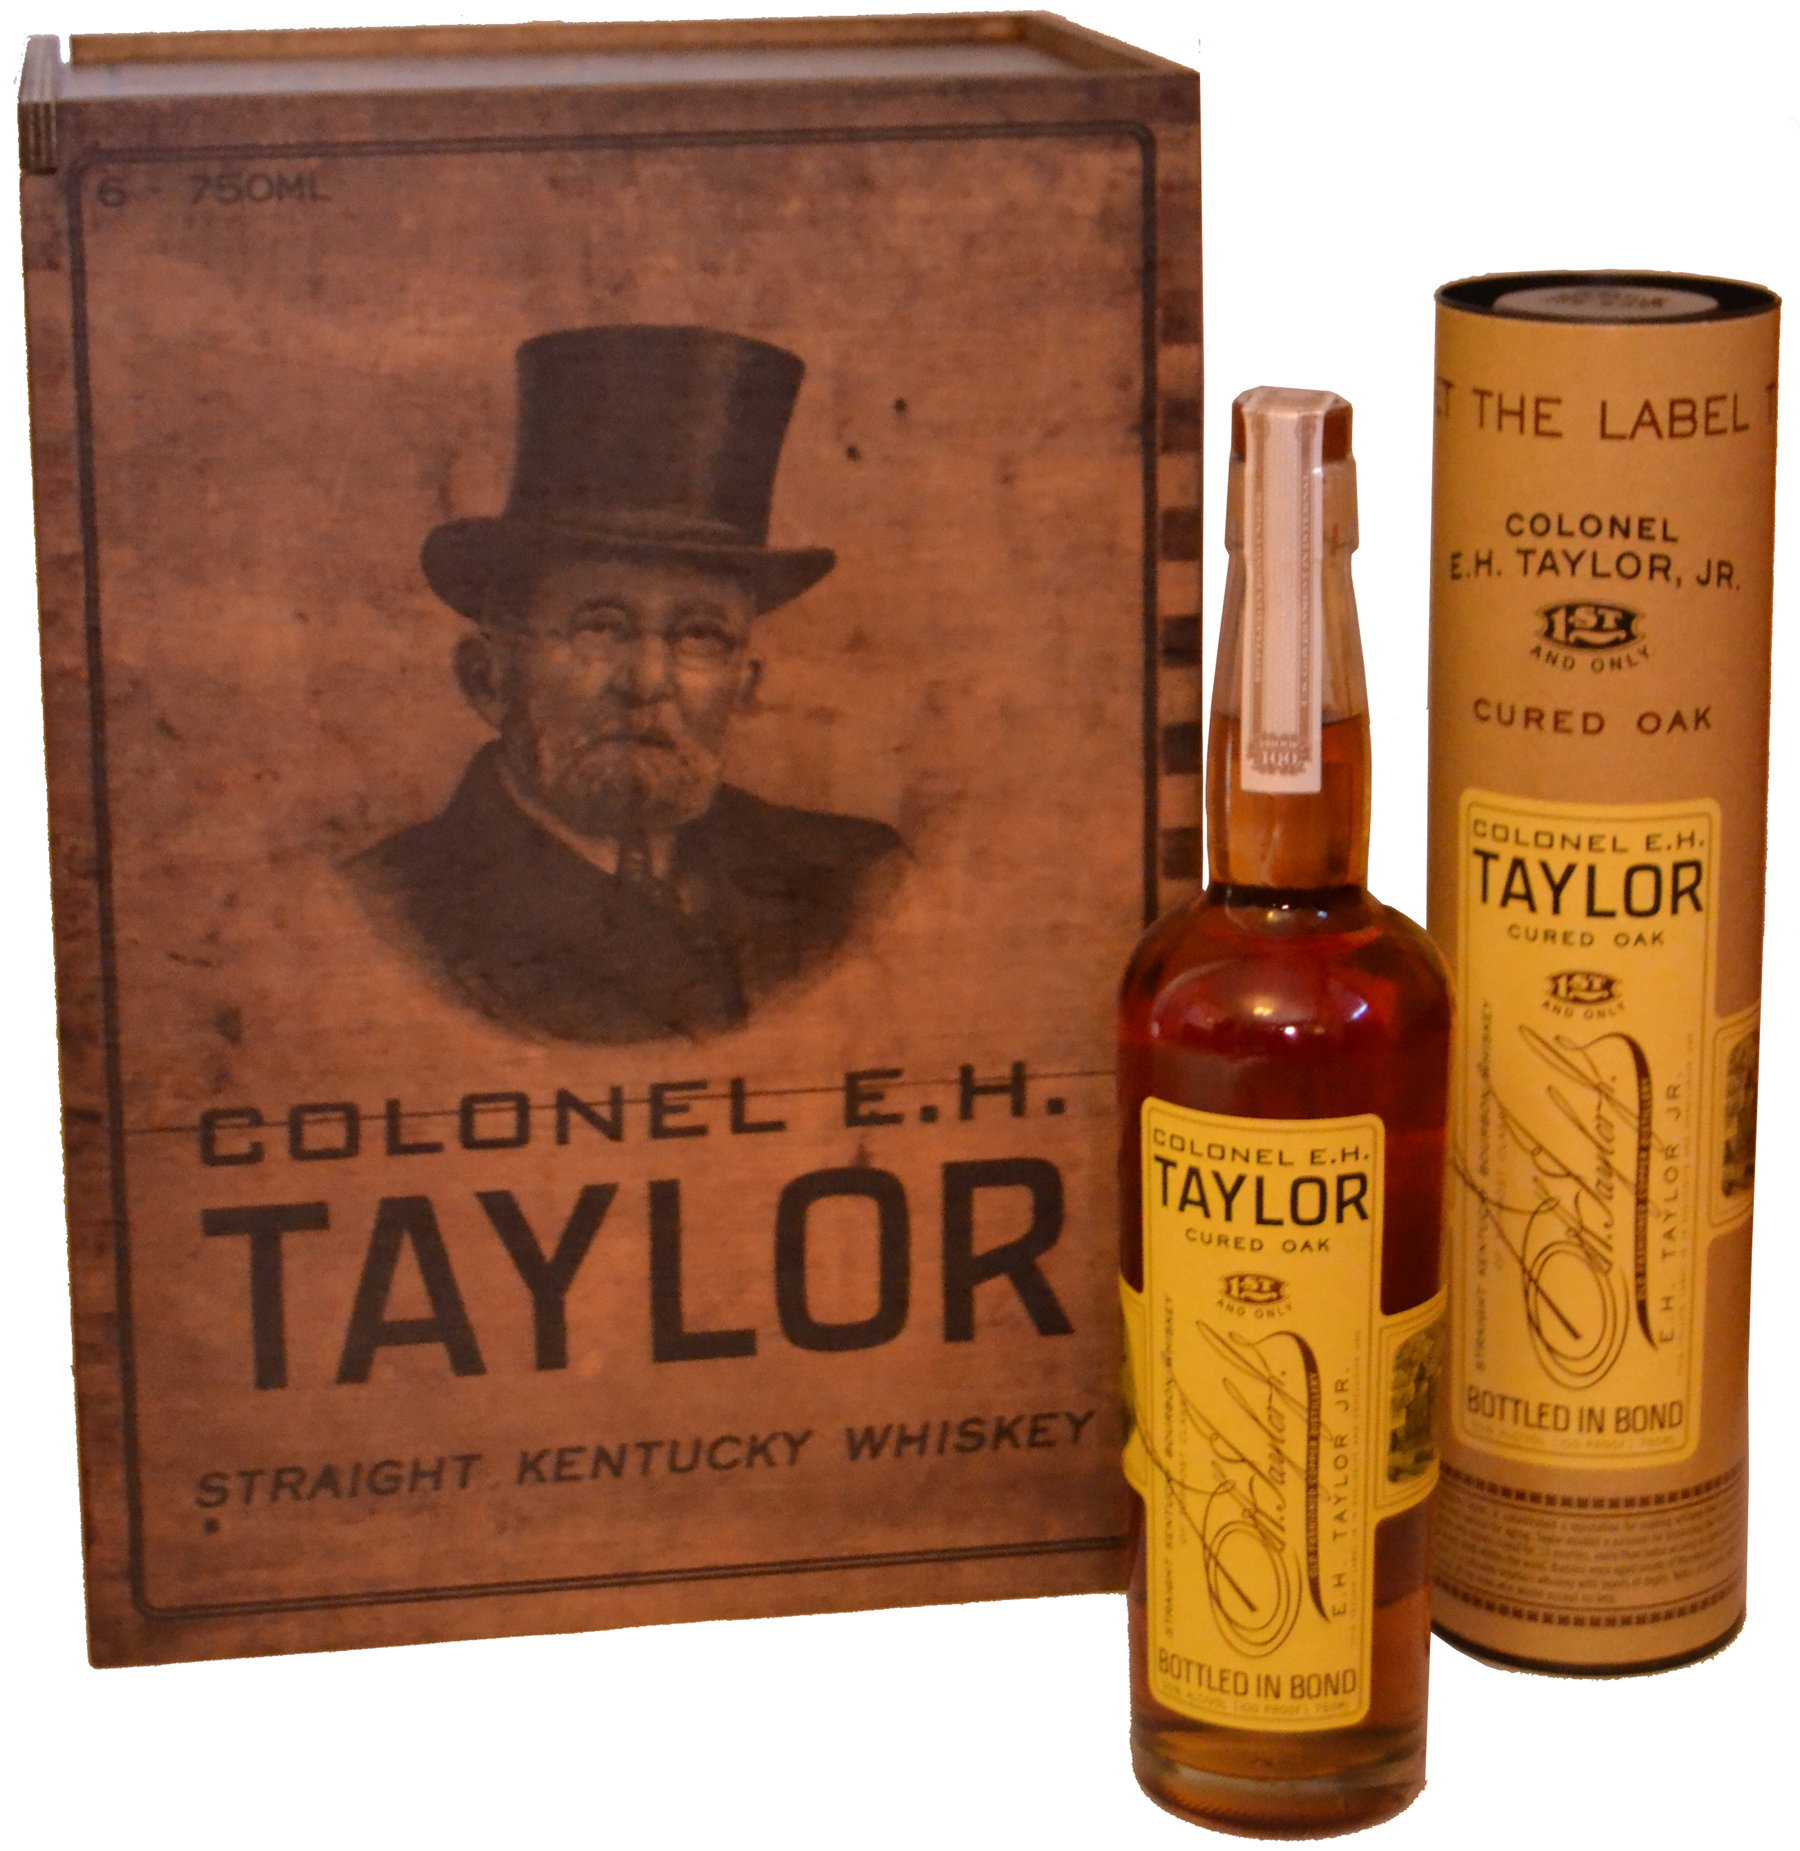 Col. E.H. Taylor Cured Oak Bourbon